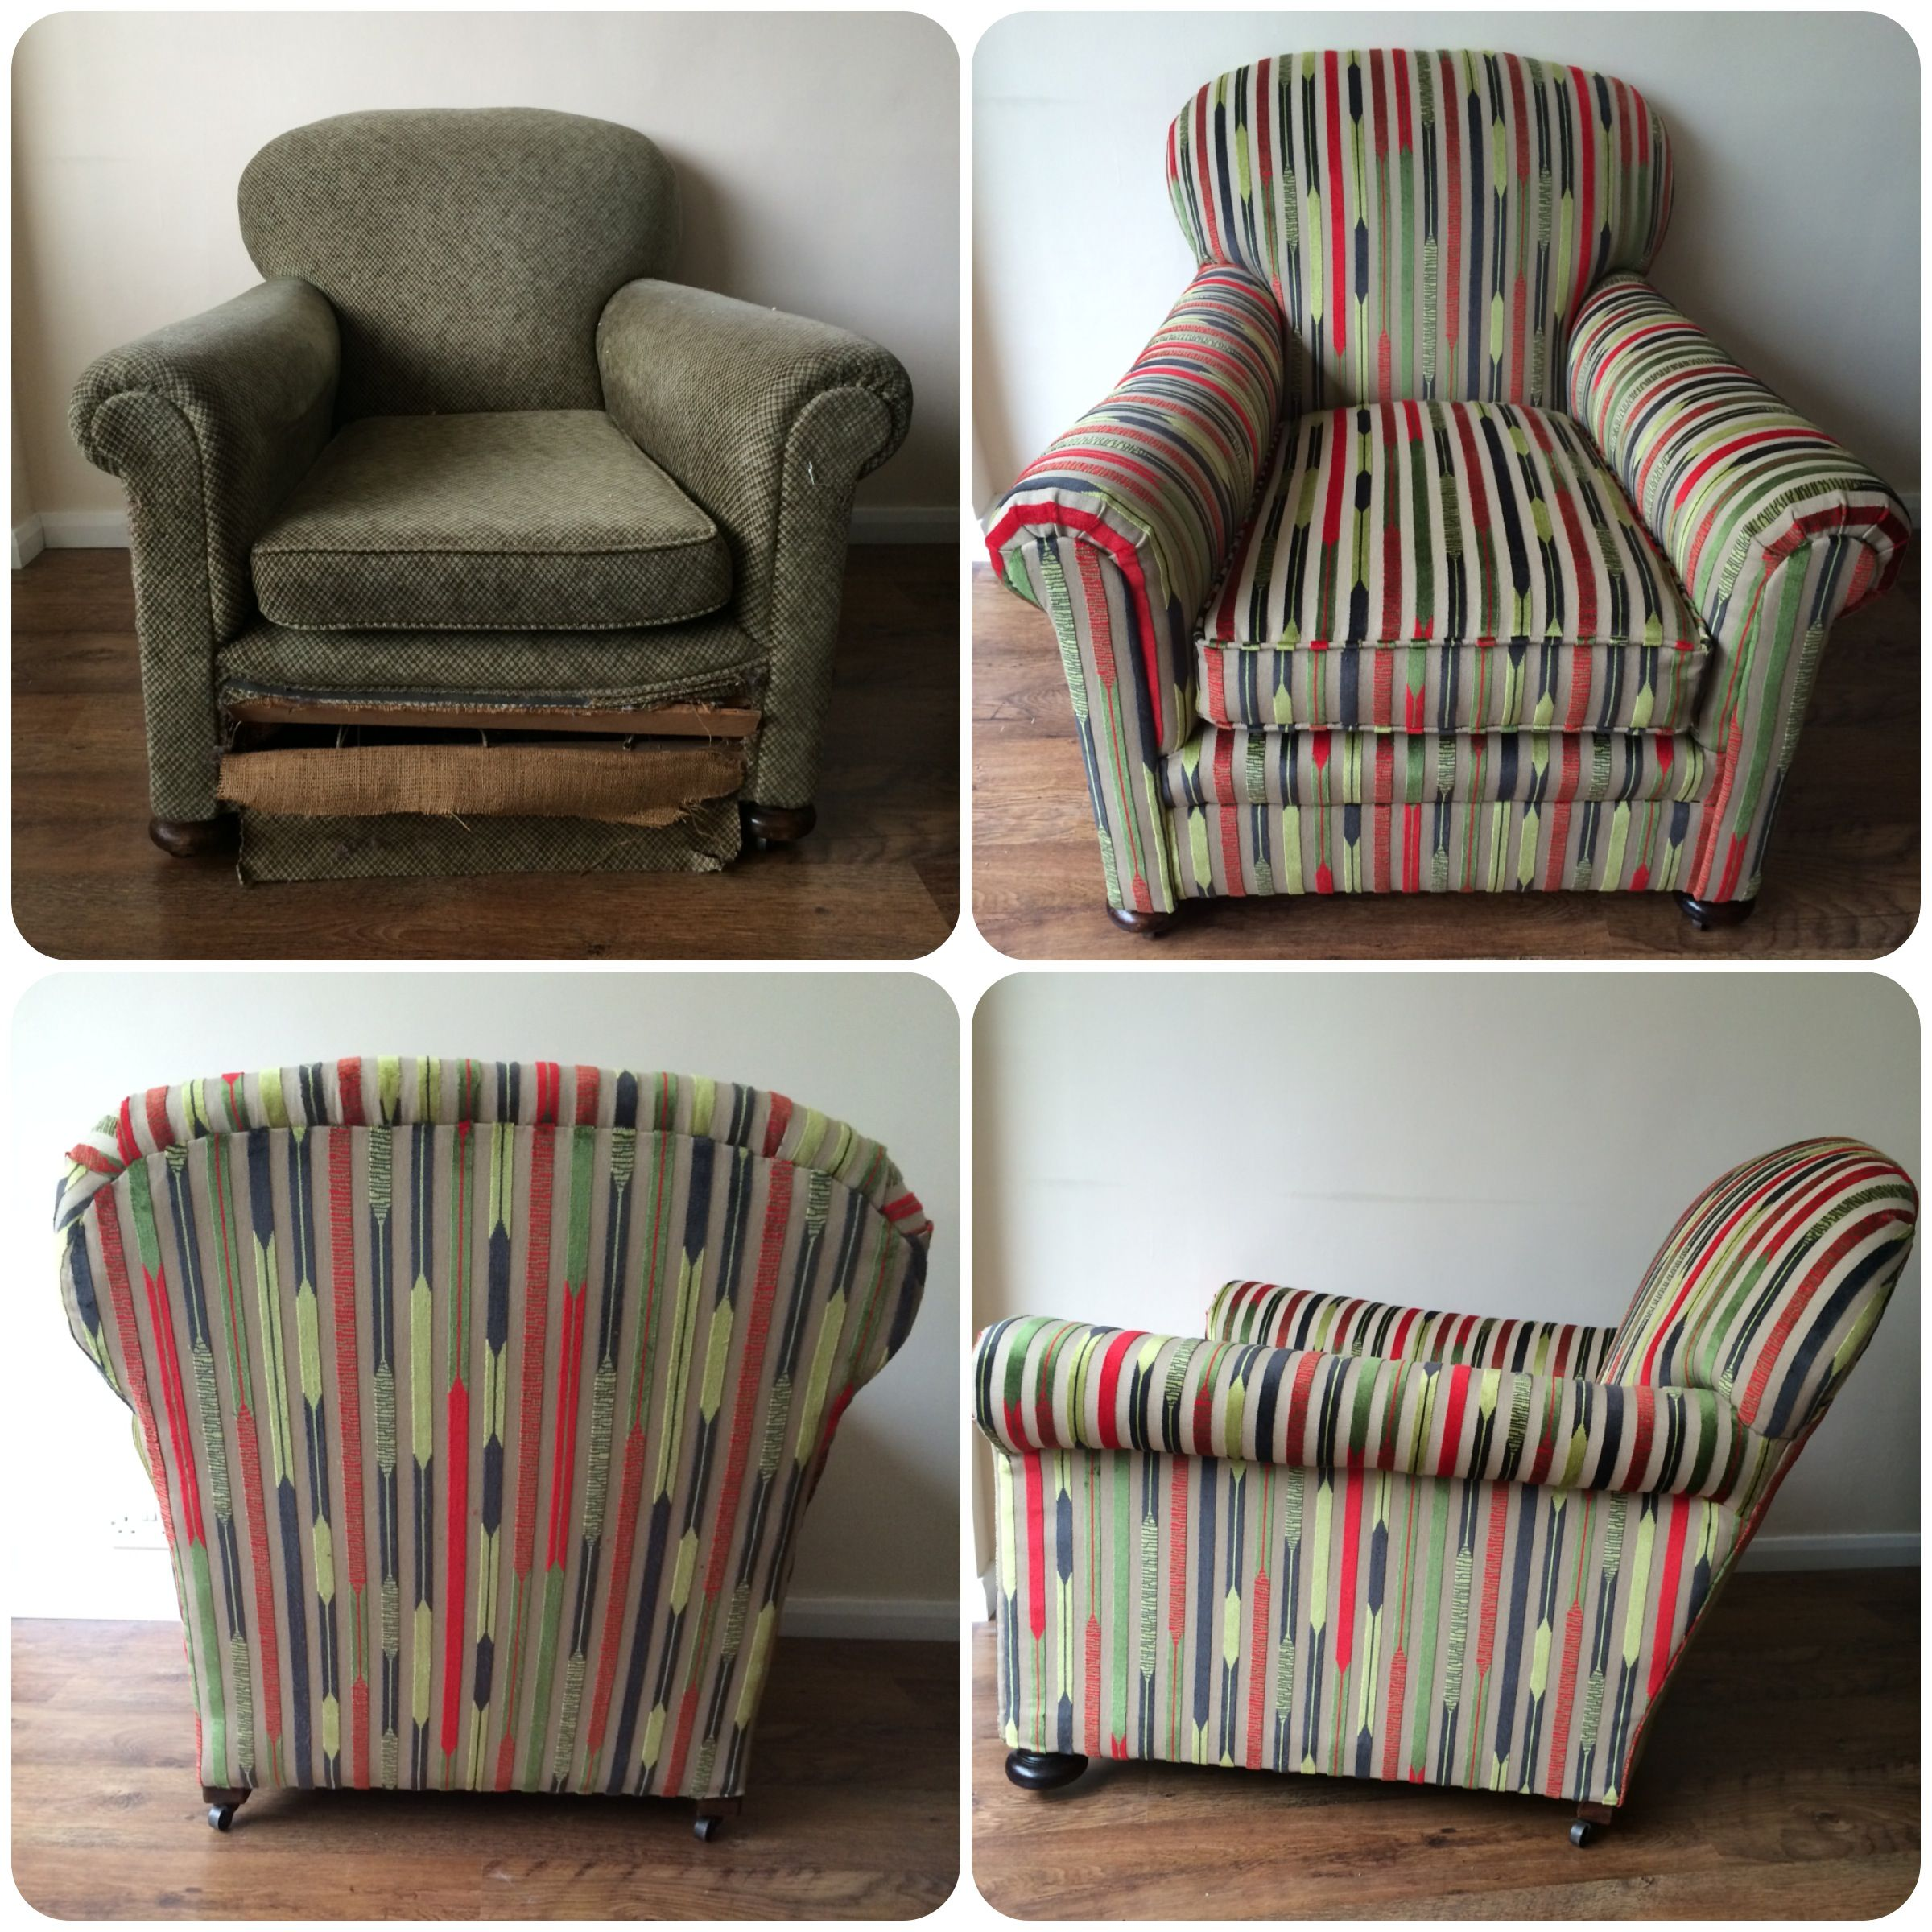 Antique club chair restored and re-upholstered using Sanderson Kandinsky Velvet & Antique club chair restored and re-upholstered using Sanderson ...